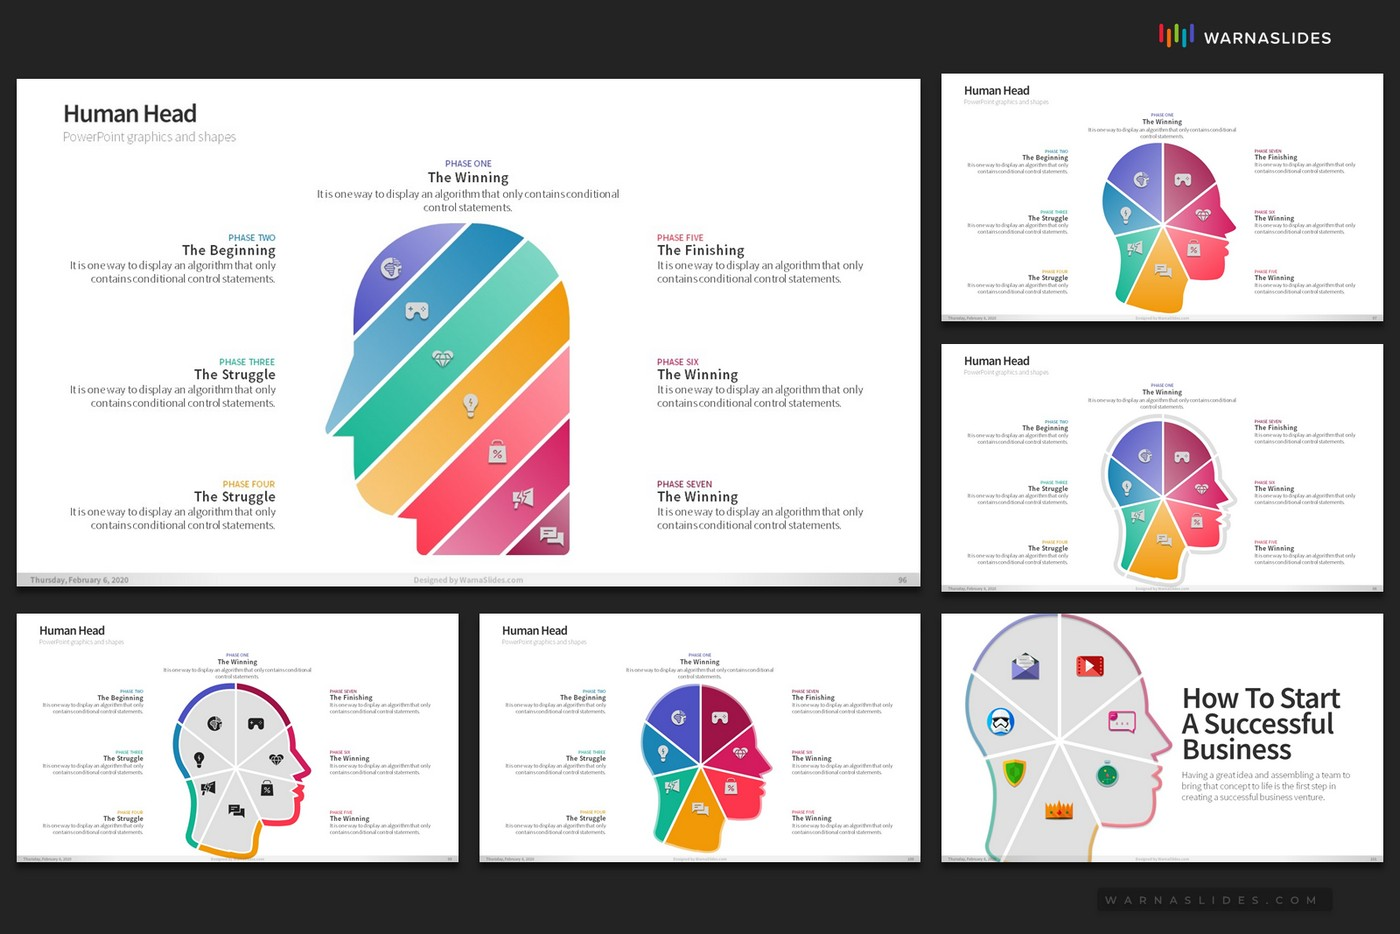 Human-Head-Ideas-Brainstorm-PowerPoint-Template-for-Business-Pitch-Deck-Professional-Creative-PowerPoint-Icons-019